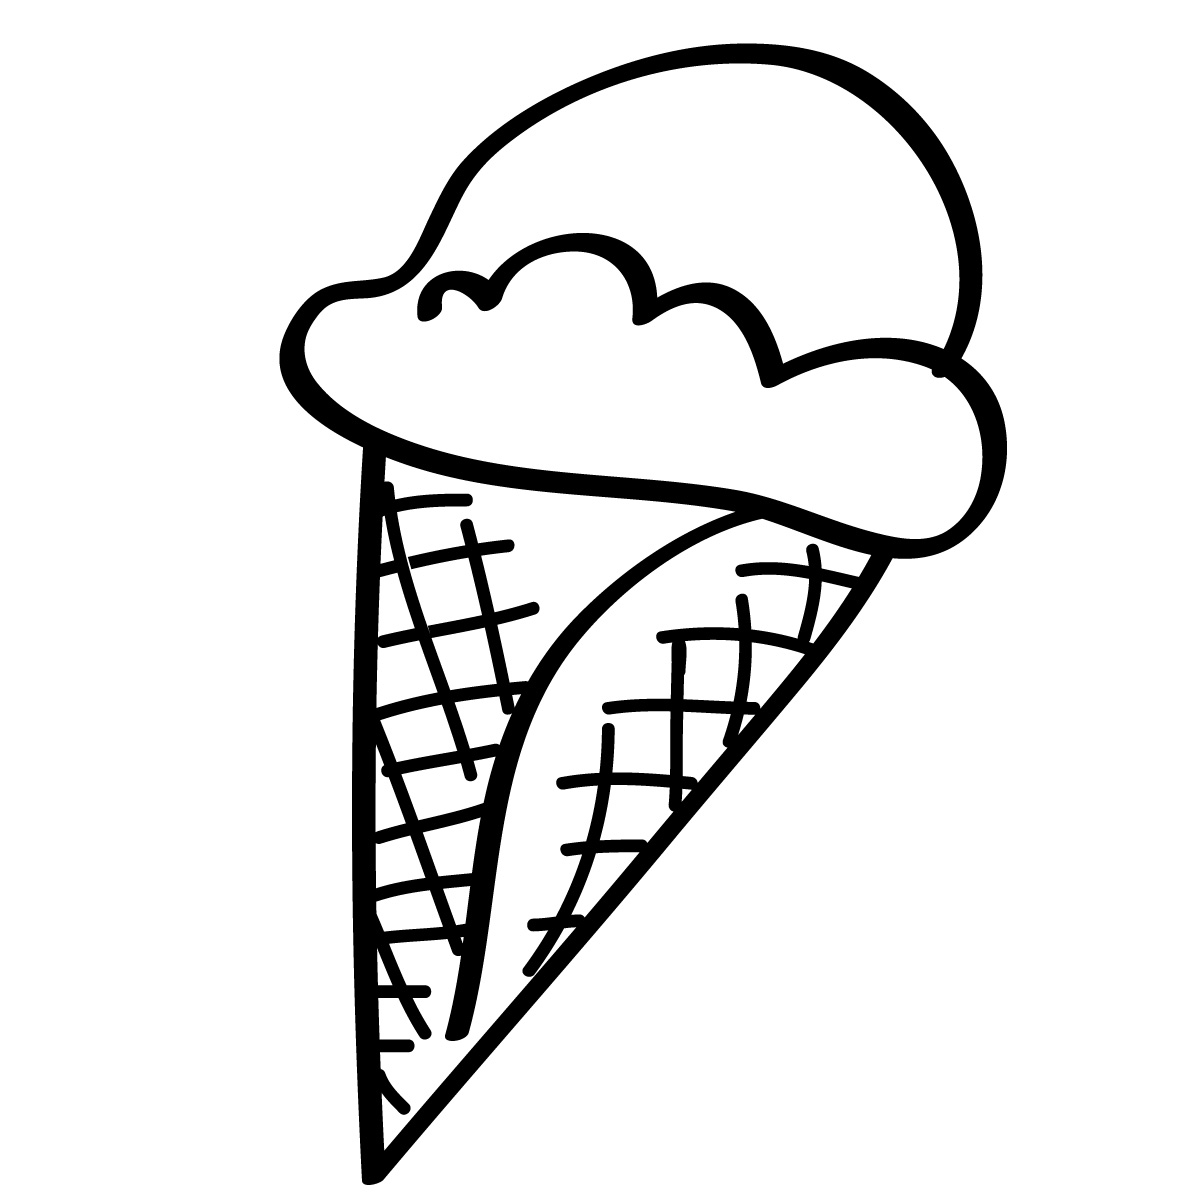 ice cream clipart black and white clipart panda free clipart images rh clipartpanda com ice cream scoop clipart black and white ice cream cone clipart black and white